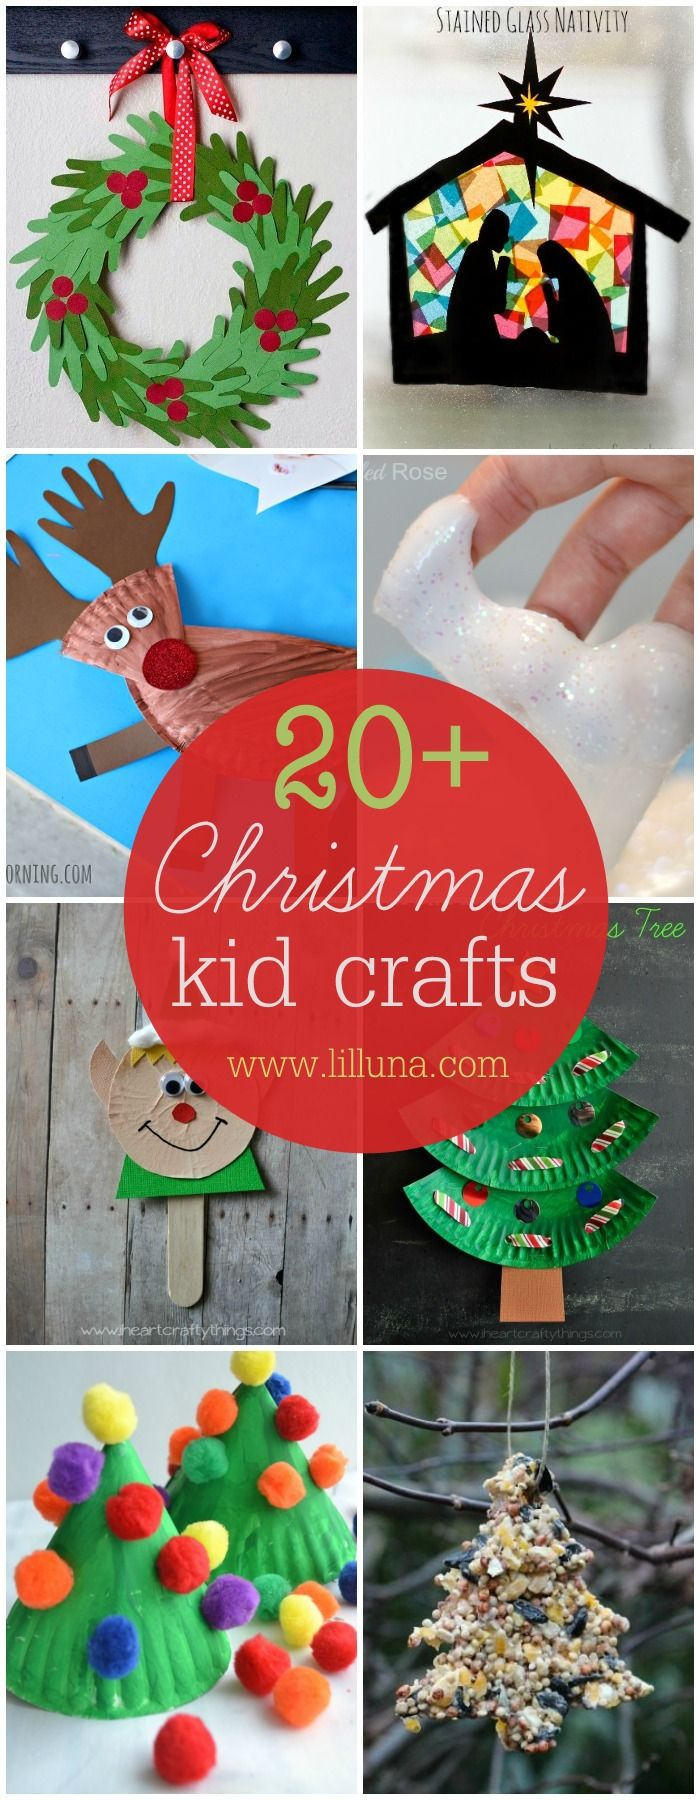 20+ Christmas Kid Crafts. A fun and easy collection of crafts that kids will enjoy making this holiday season!